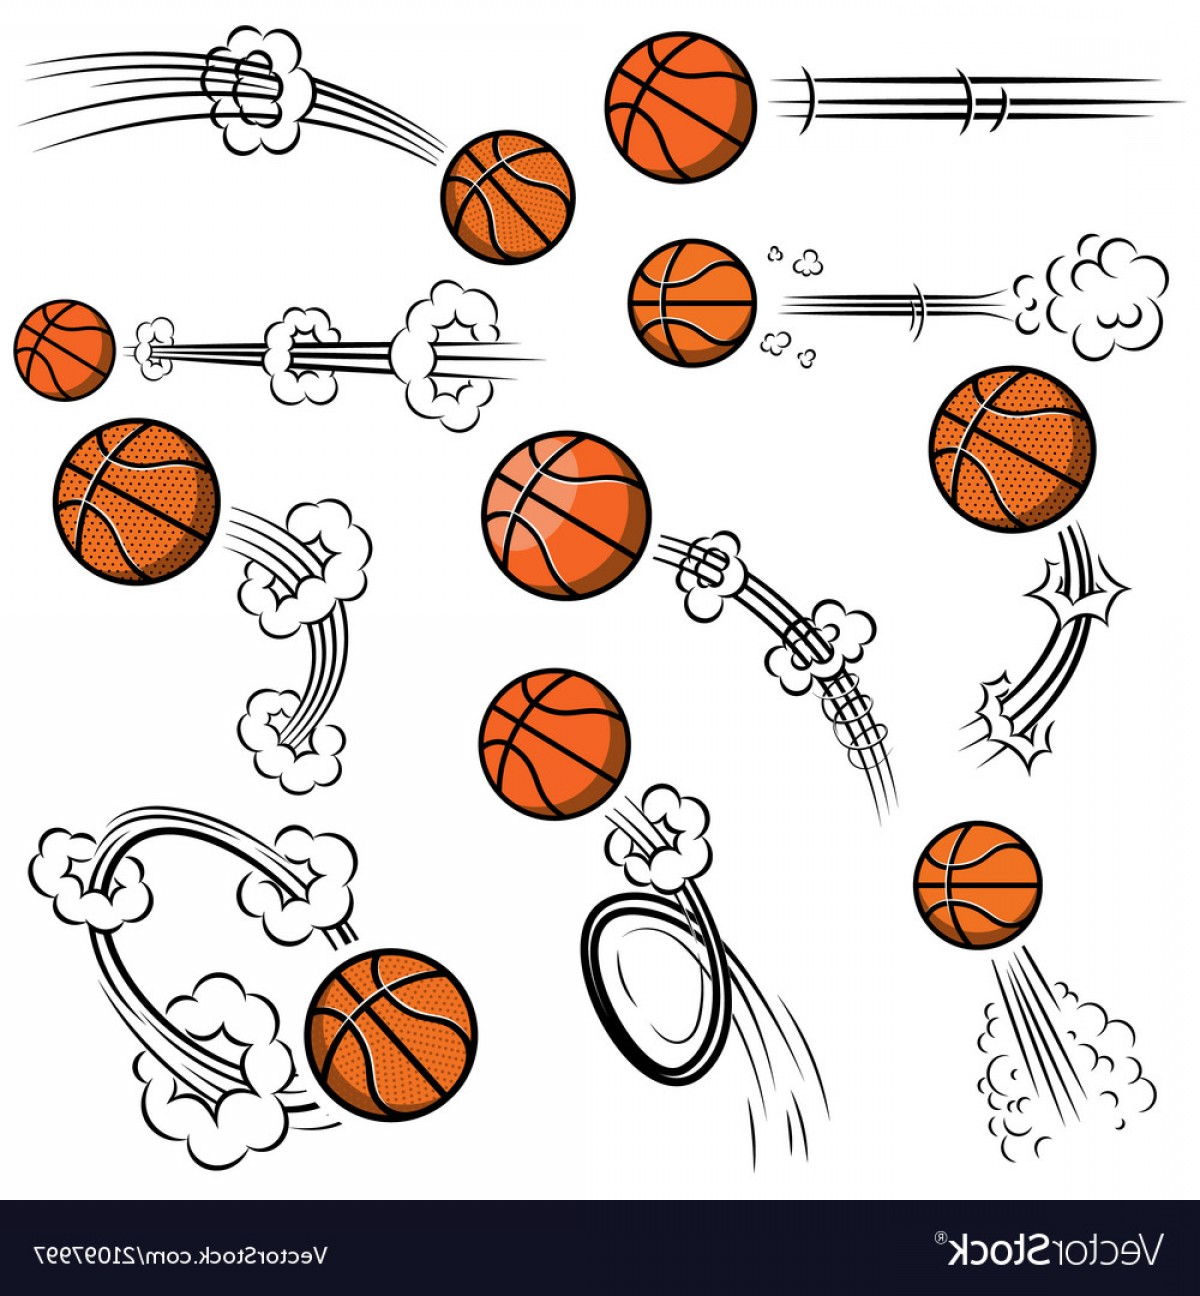 Motion Basketball Vector: Set Of Basketball Balls With Motion Trails In Vector